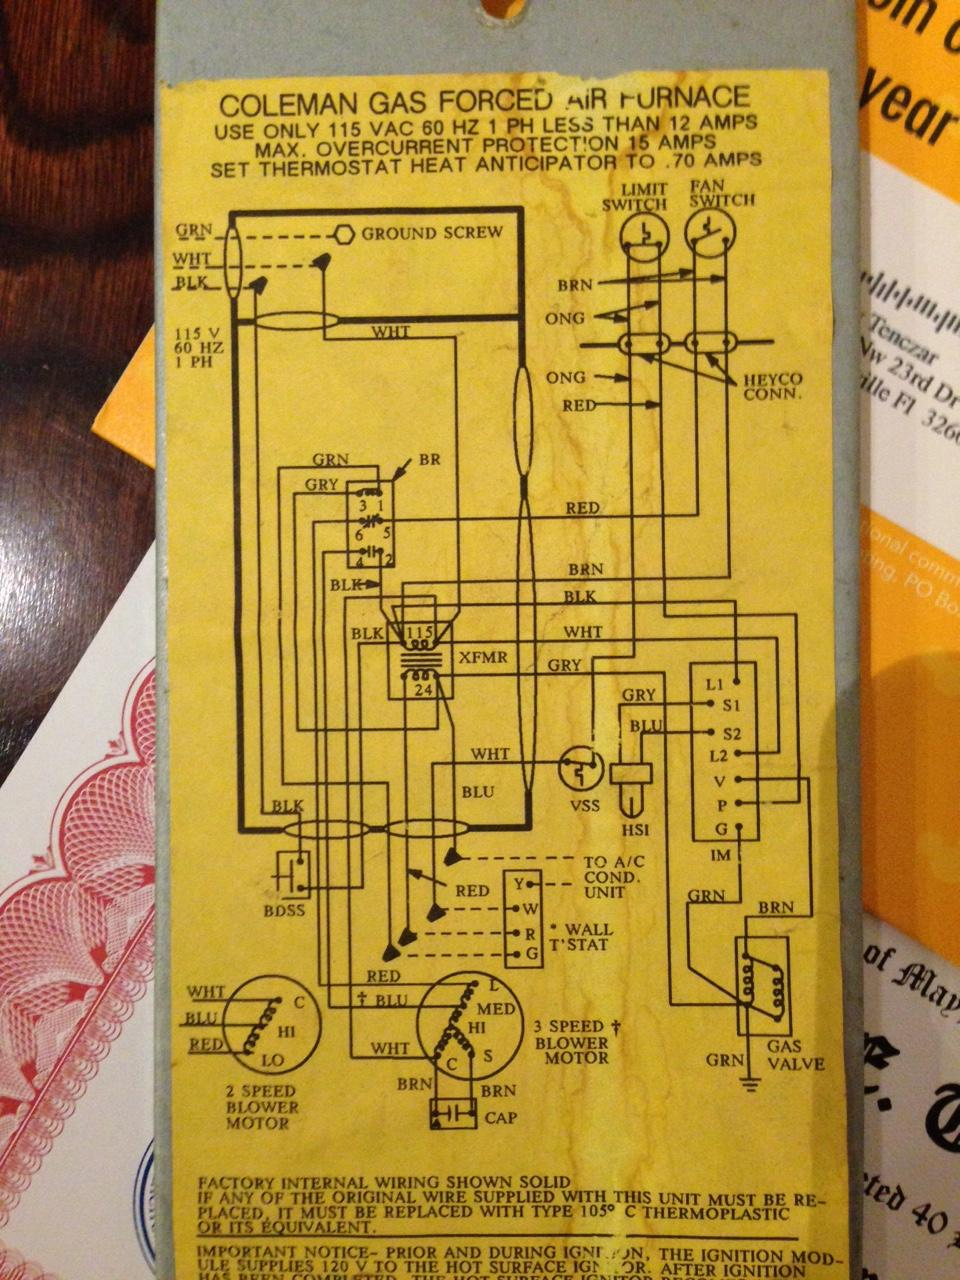 medium resolution of coleman furnace wiring diagram wiring diagram paper coleman furnace wiring diagram wiring diagram operations coleman furnace